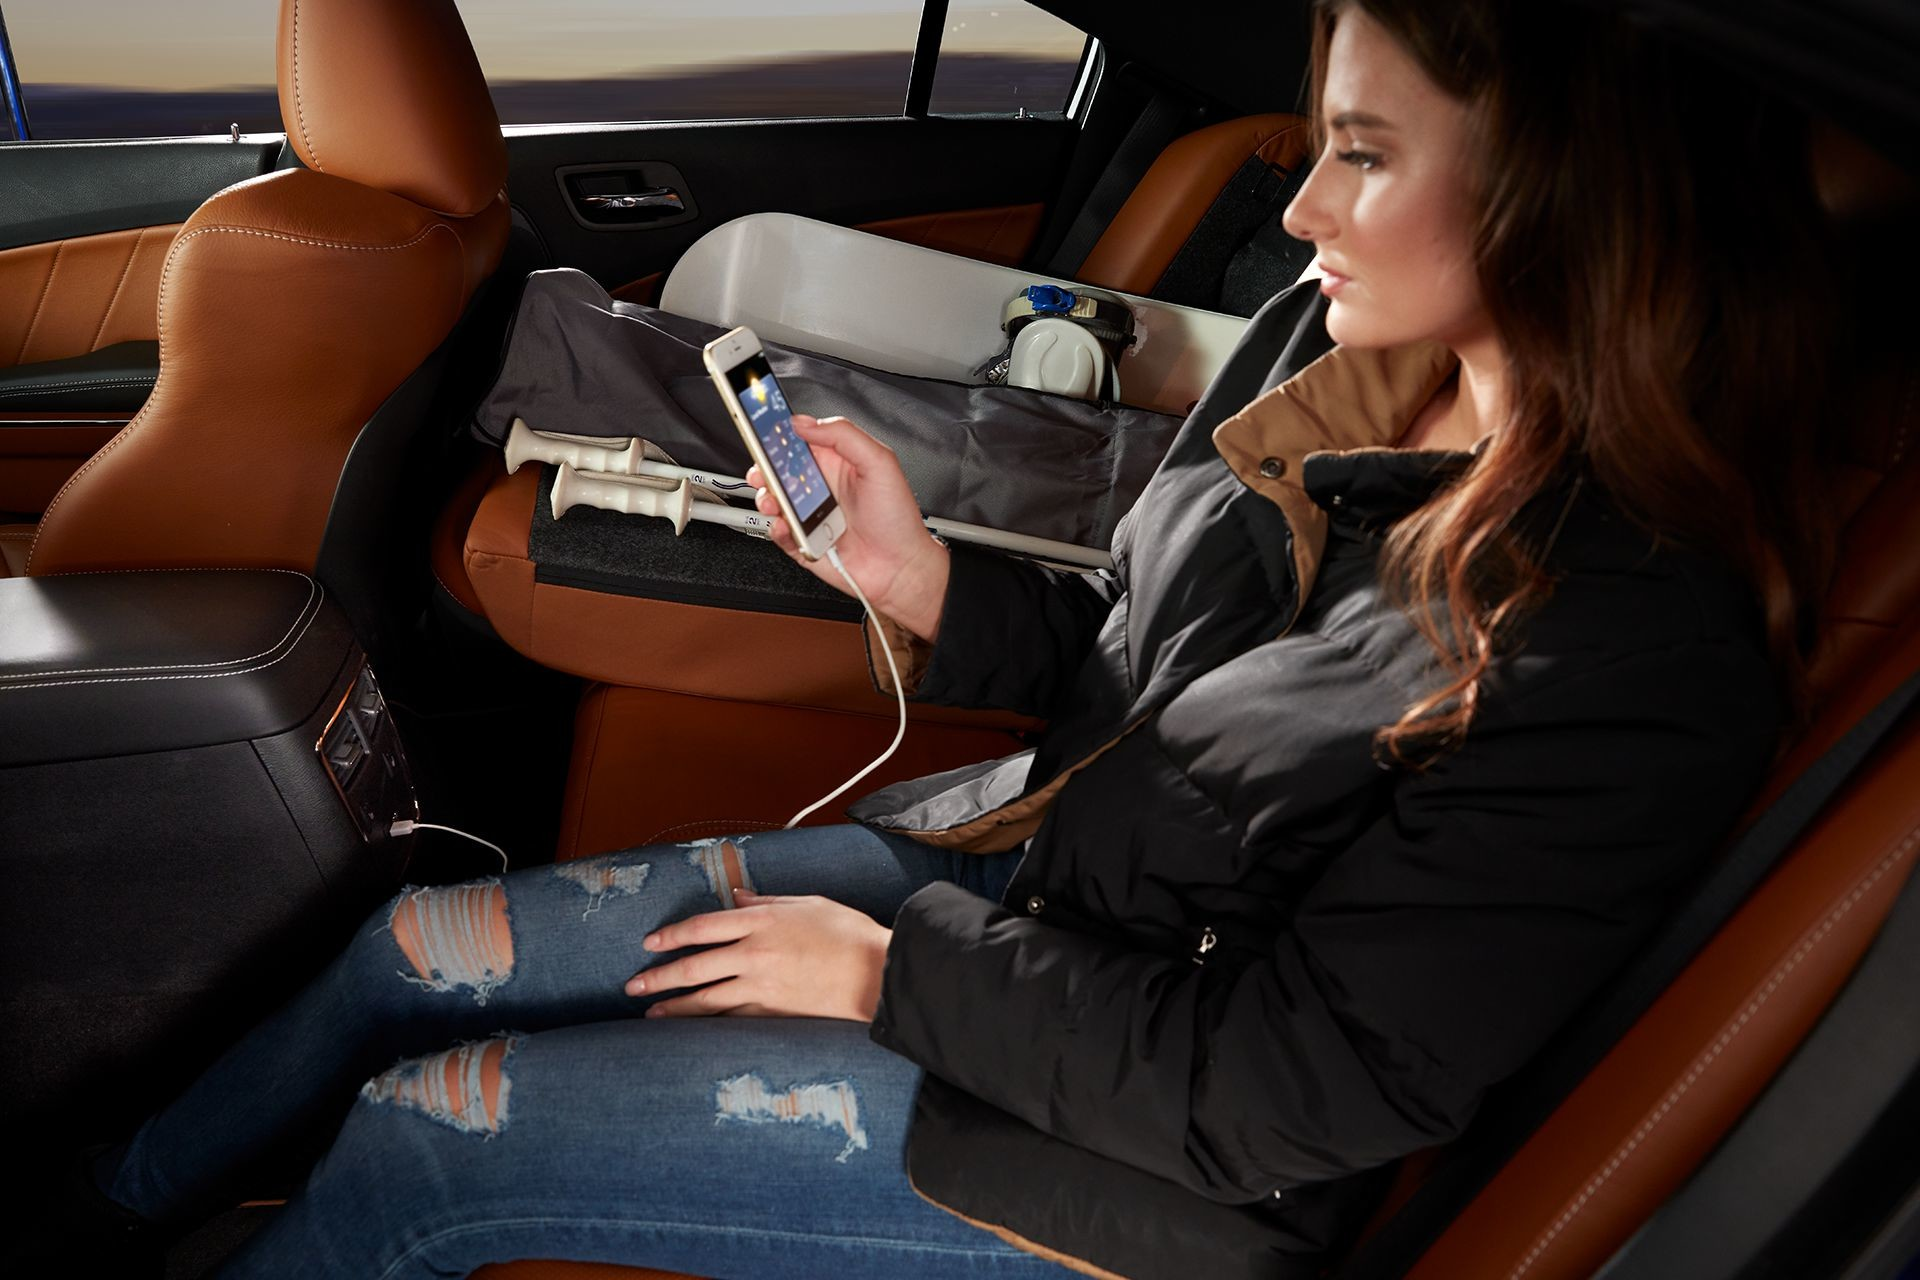 2019 Dodge Charger comfortable rear seats with a woman holding a smartphone